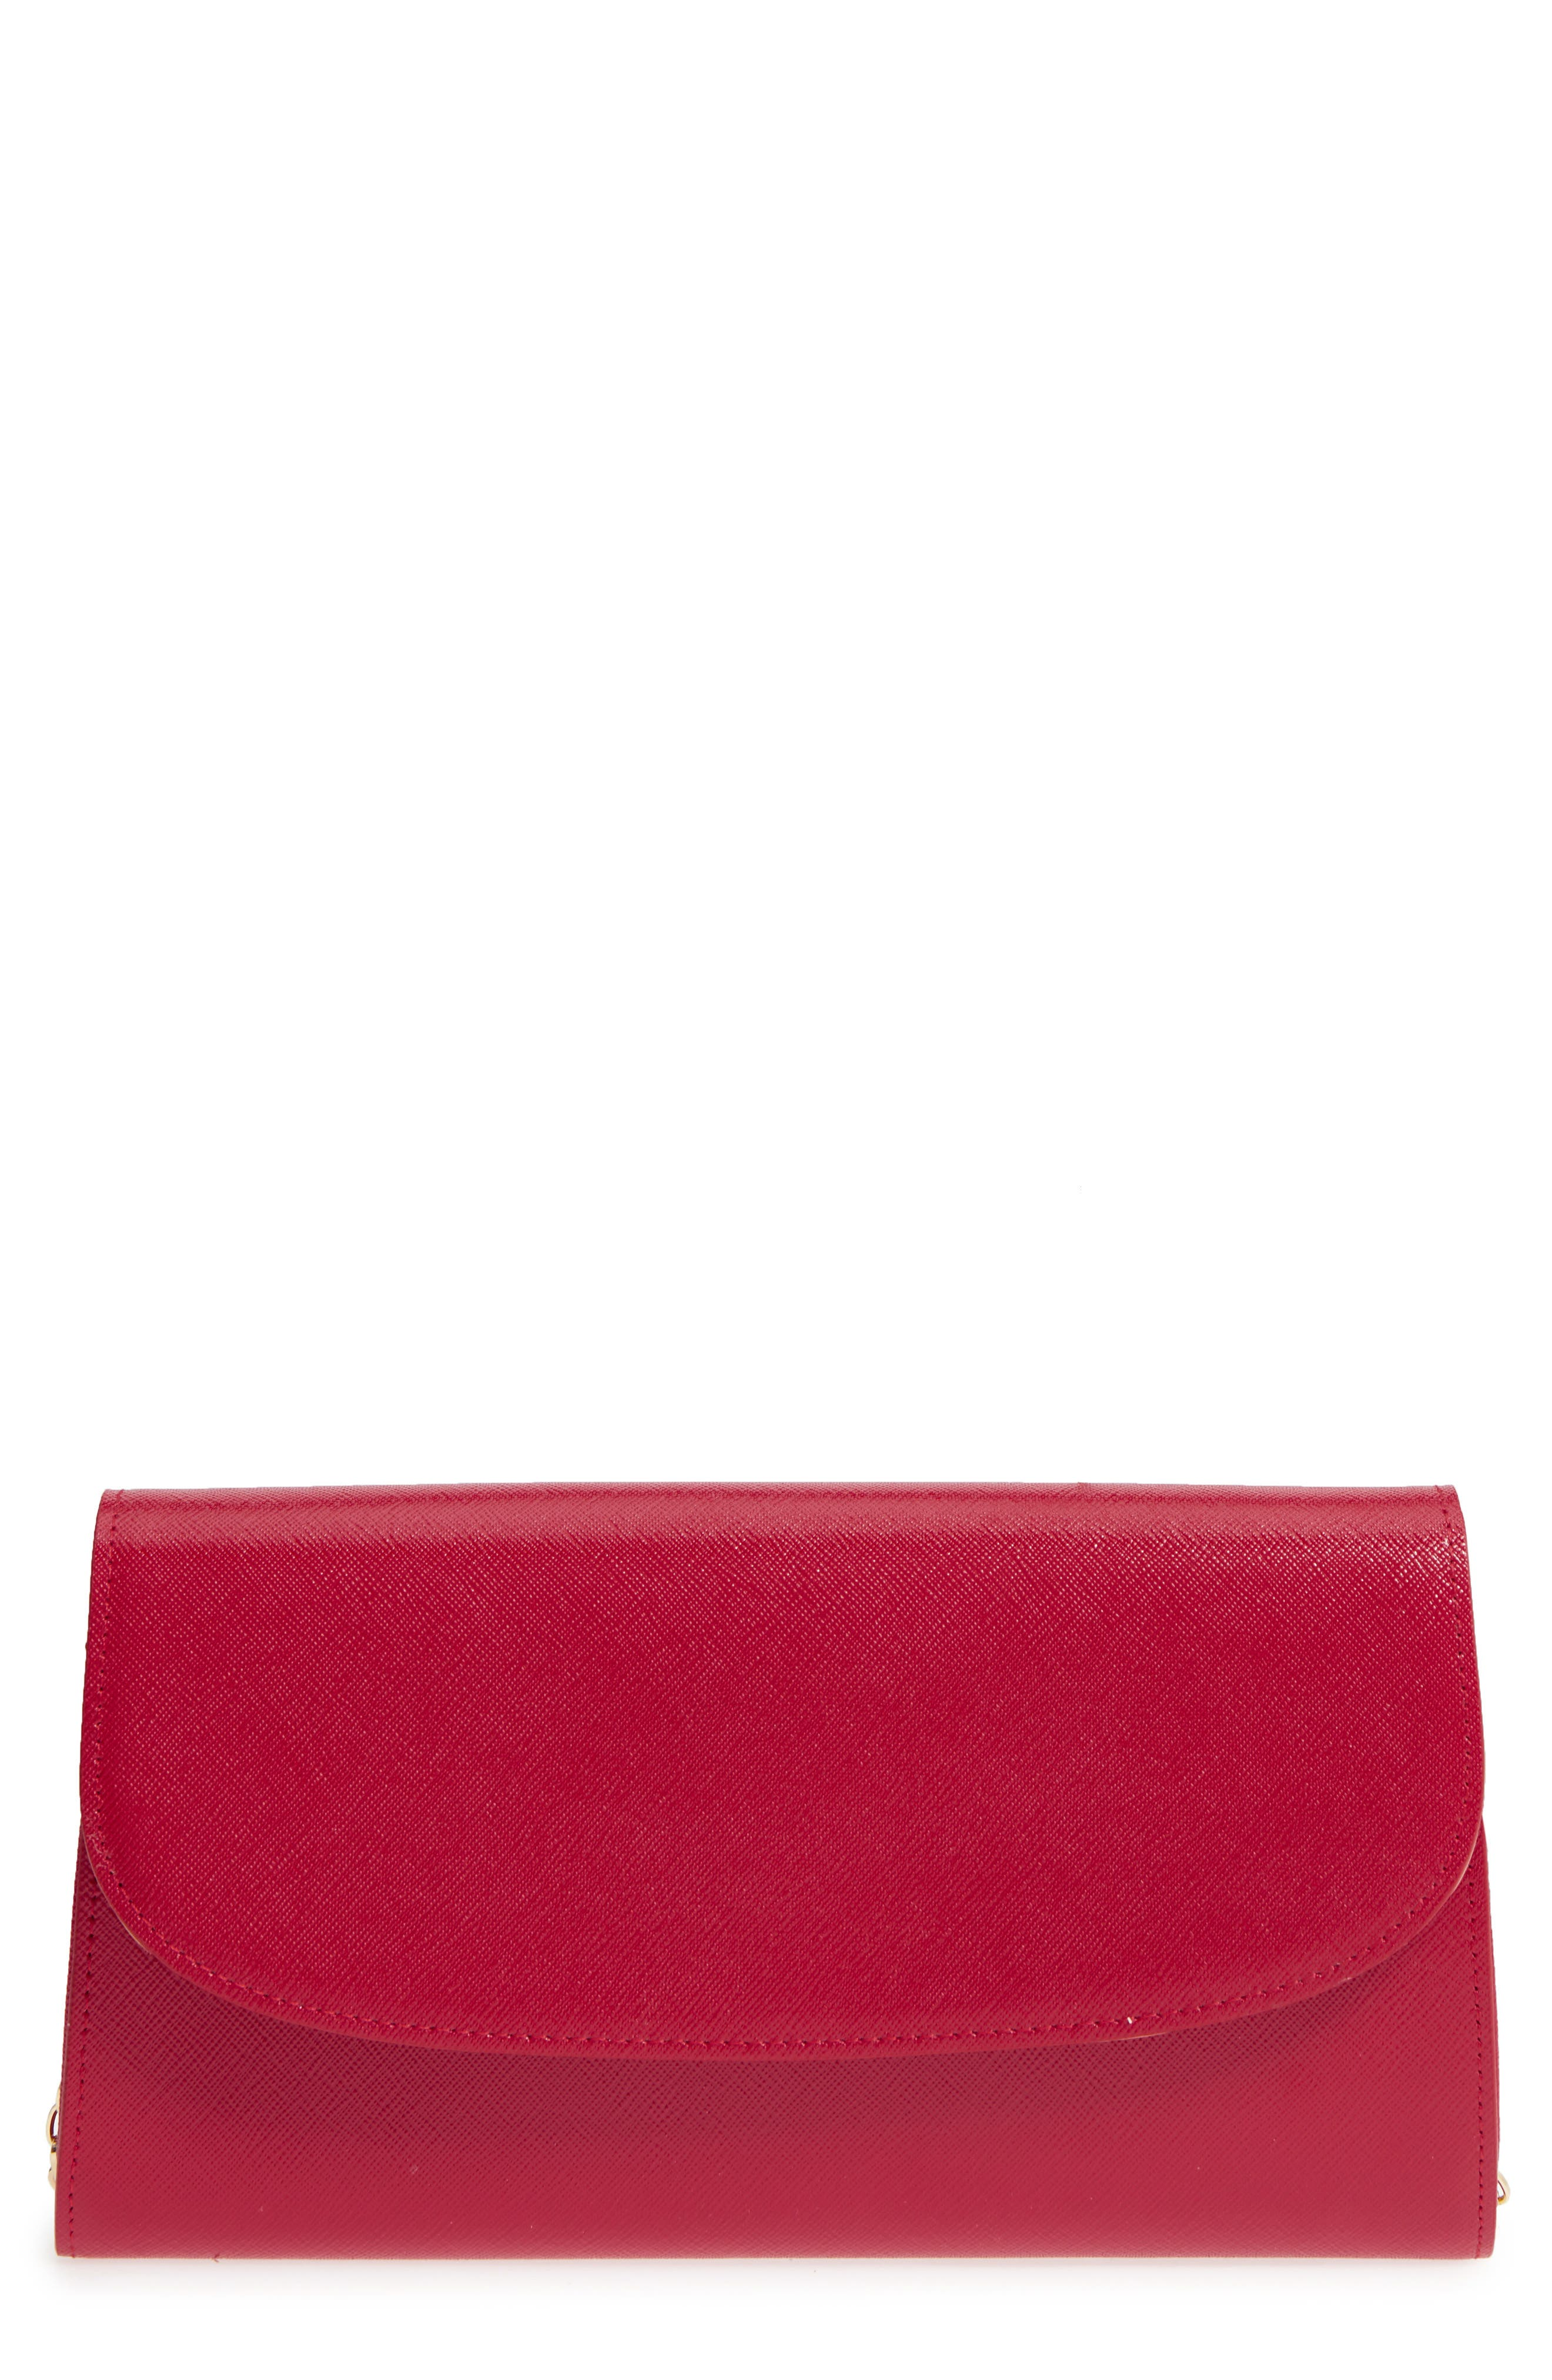 Leather Clutch,                             Main thumbnail 1, color,                             RED JESTER